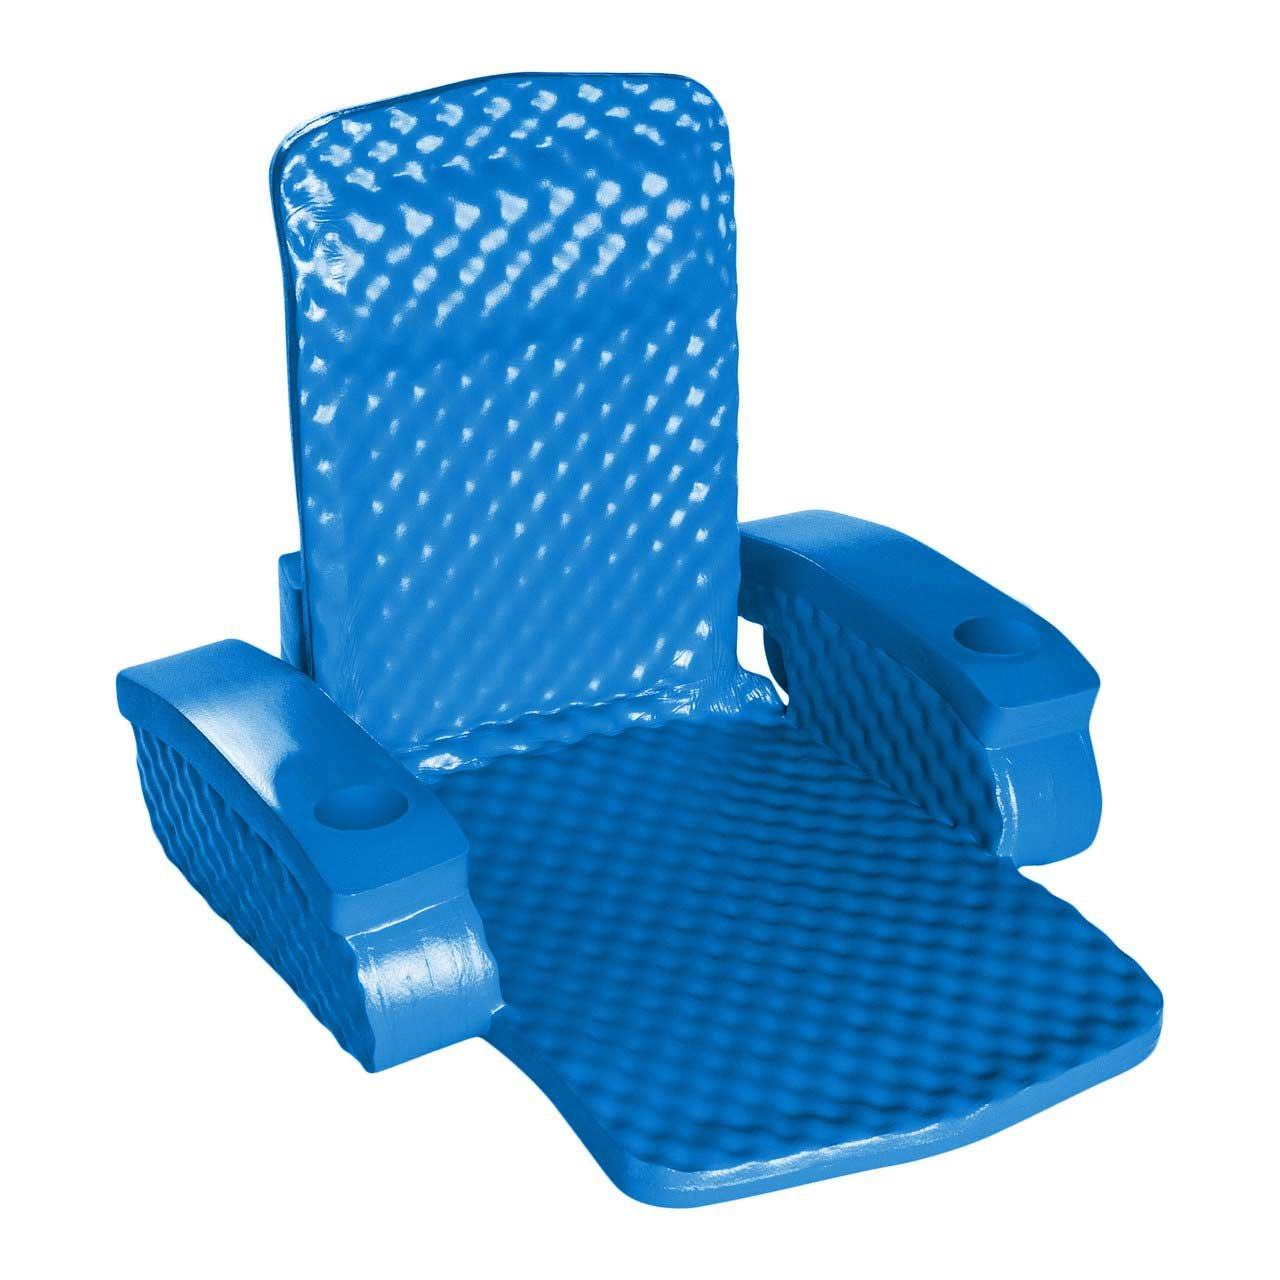 TRC Recreation Baja Folding Chair in Bahama Blue by Blue Wave (Image #1)